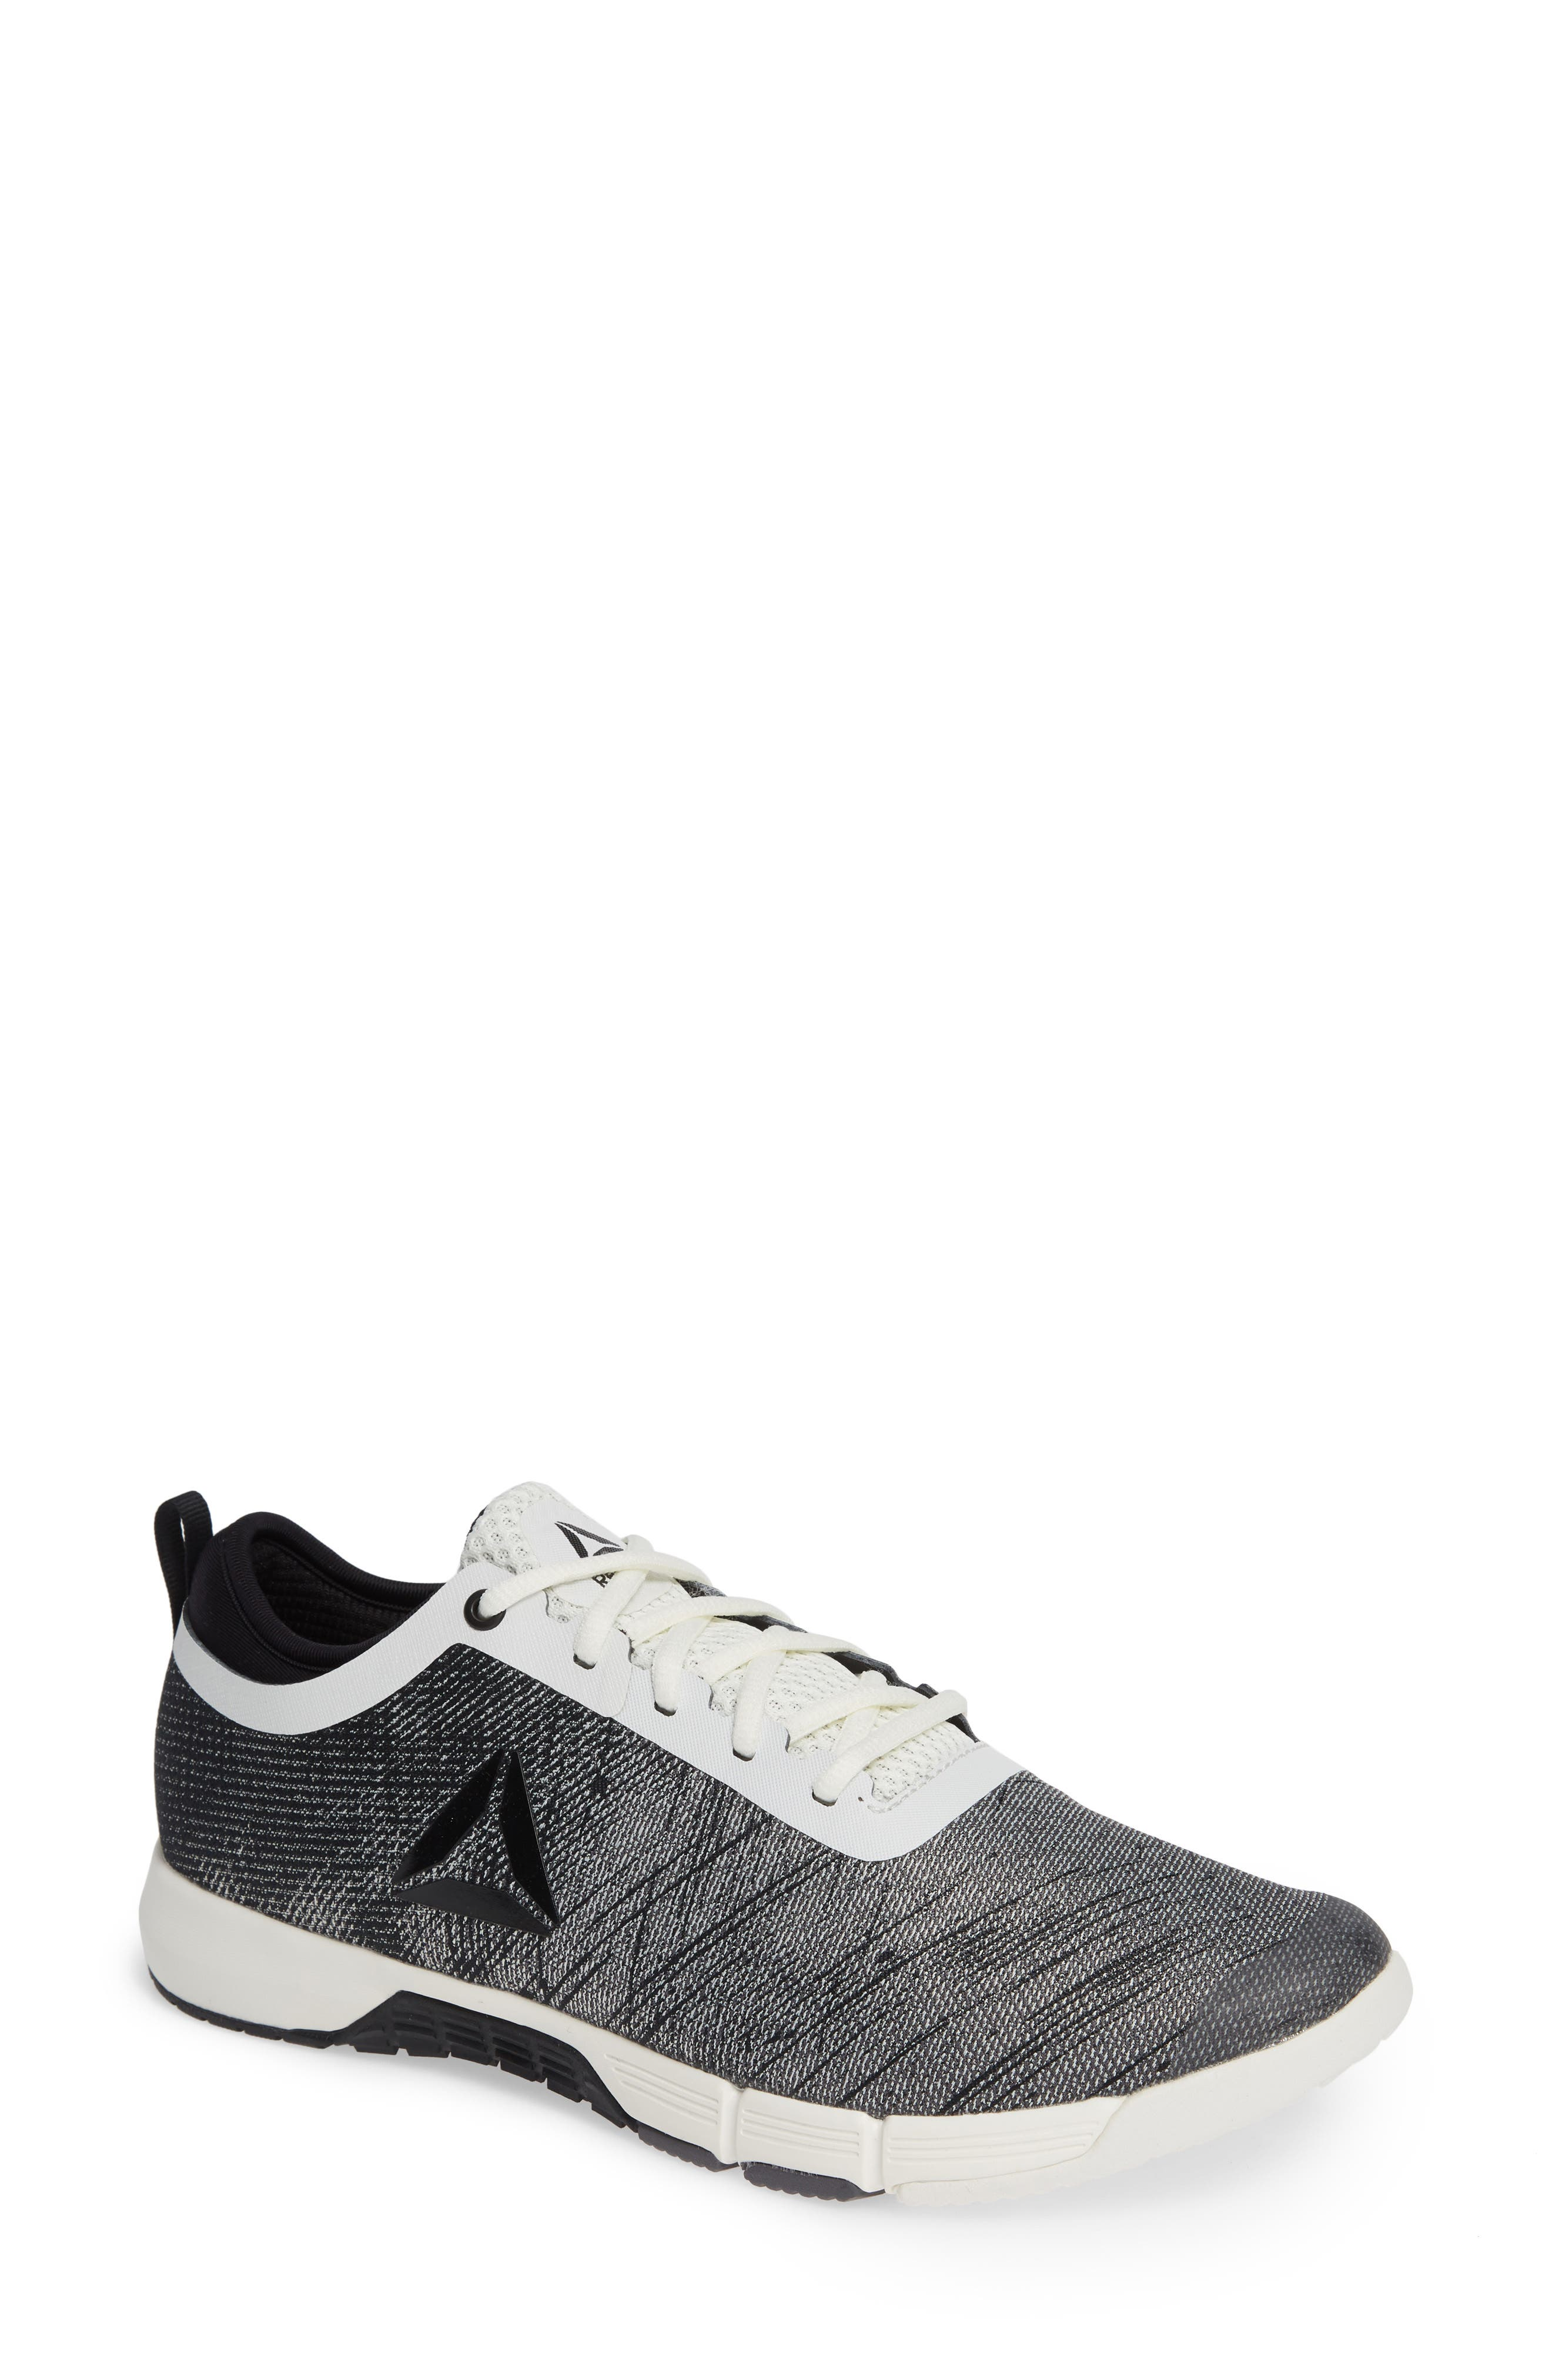 Speed Her TR Training Sneaker,                         Main,                         color, CHALK/ BLACK/ ASH GREY